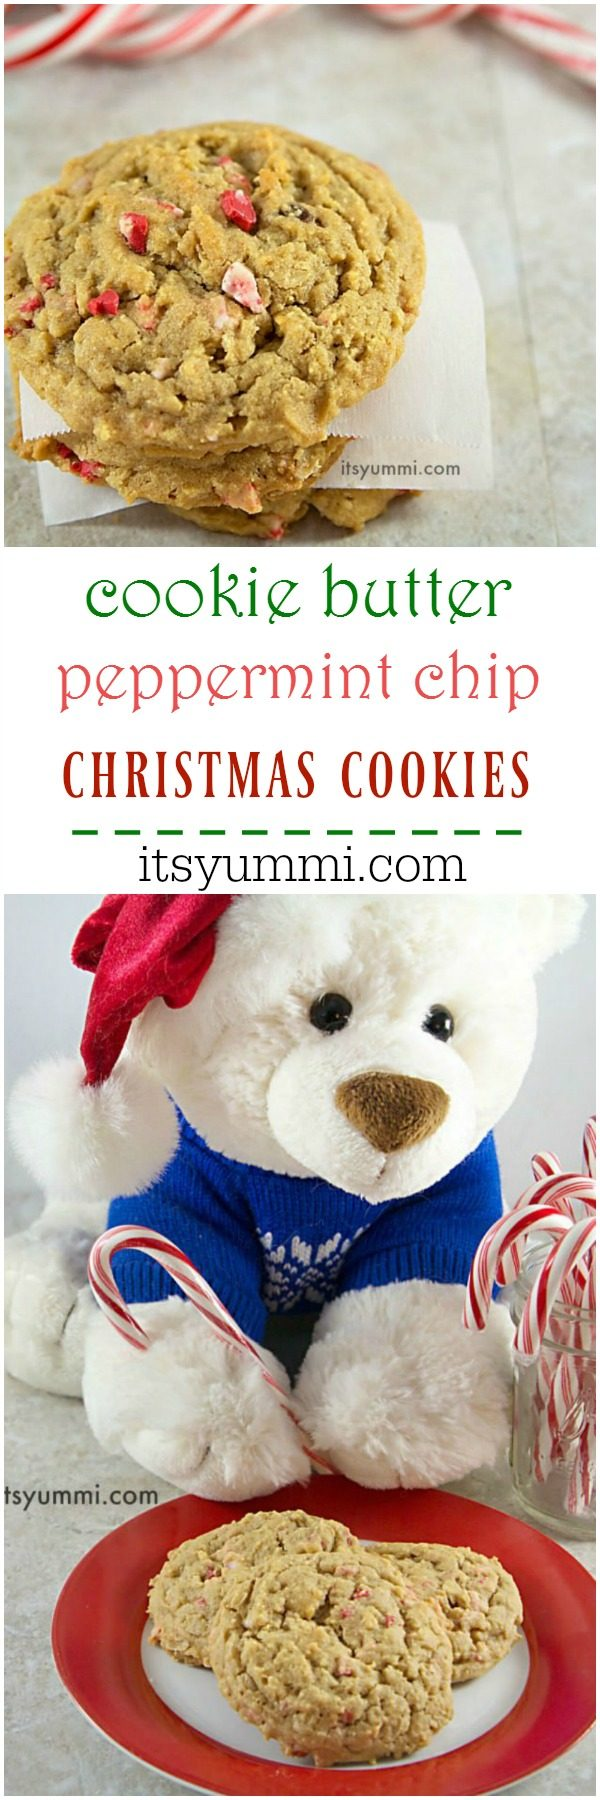 Cookie butter peppermint chip cookies, oh my! Sweet dreams are made of easy cookie recipes like this one! When cookie butter meets peppermint chips, you get a sweet holiday cookie.